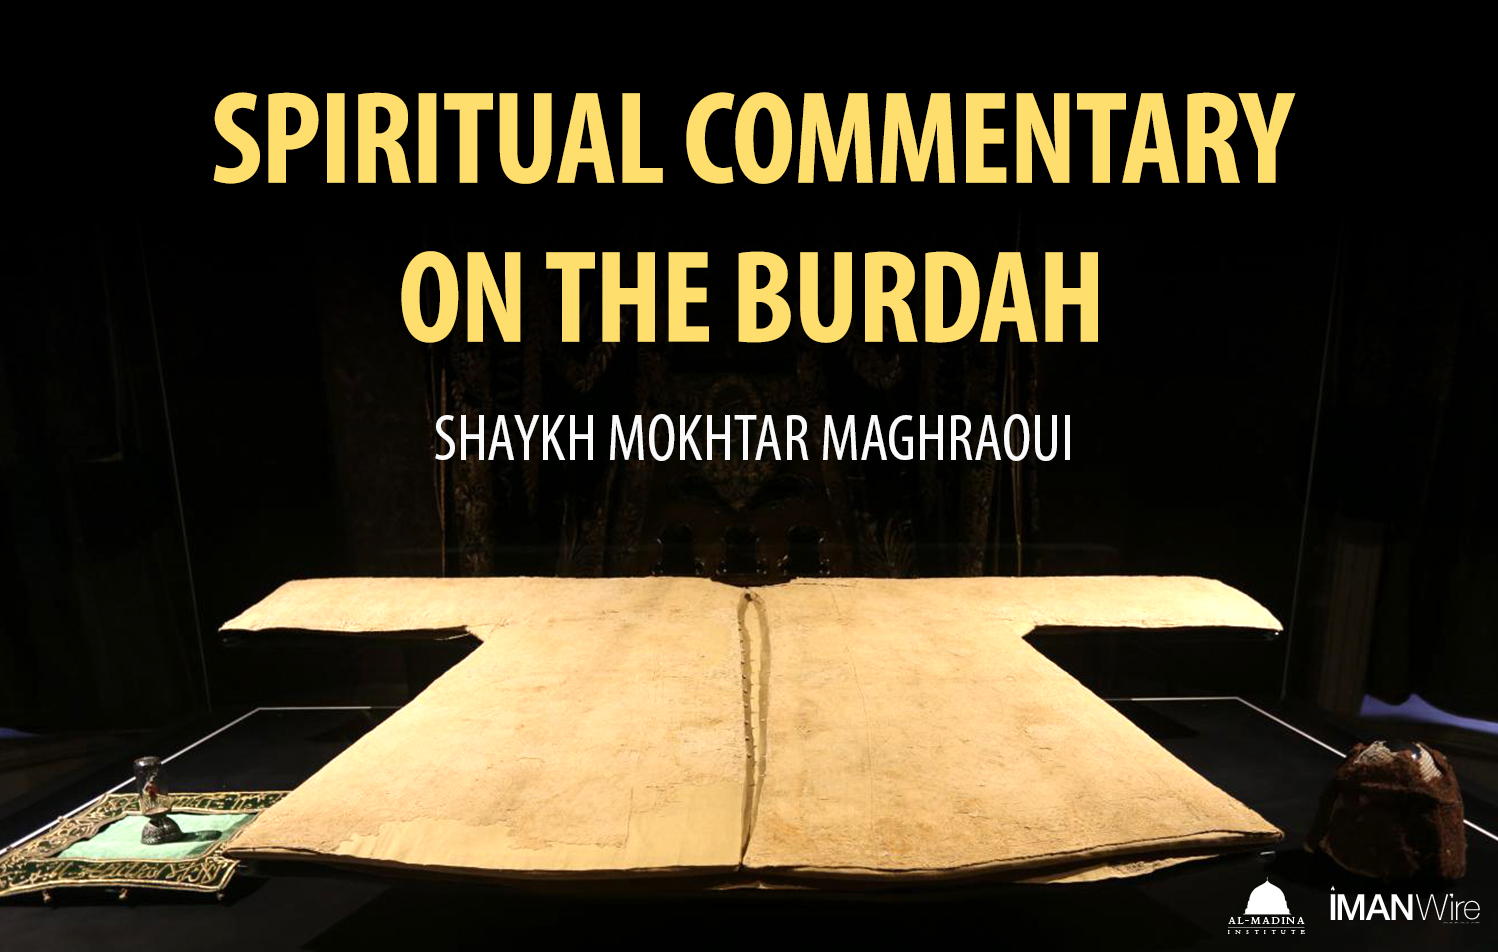 Spiritual Commentary on the Burdah: Part 2 - Shaykh Mokhtar Maghraoui